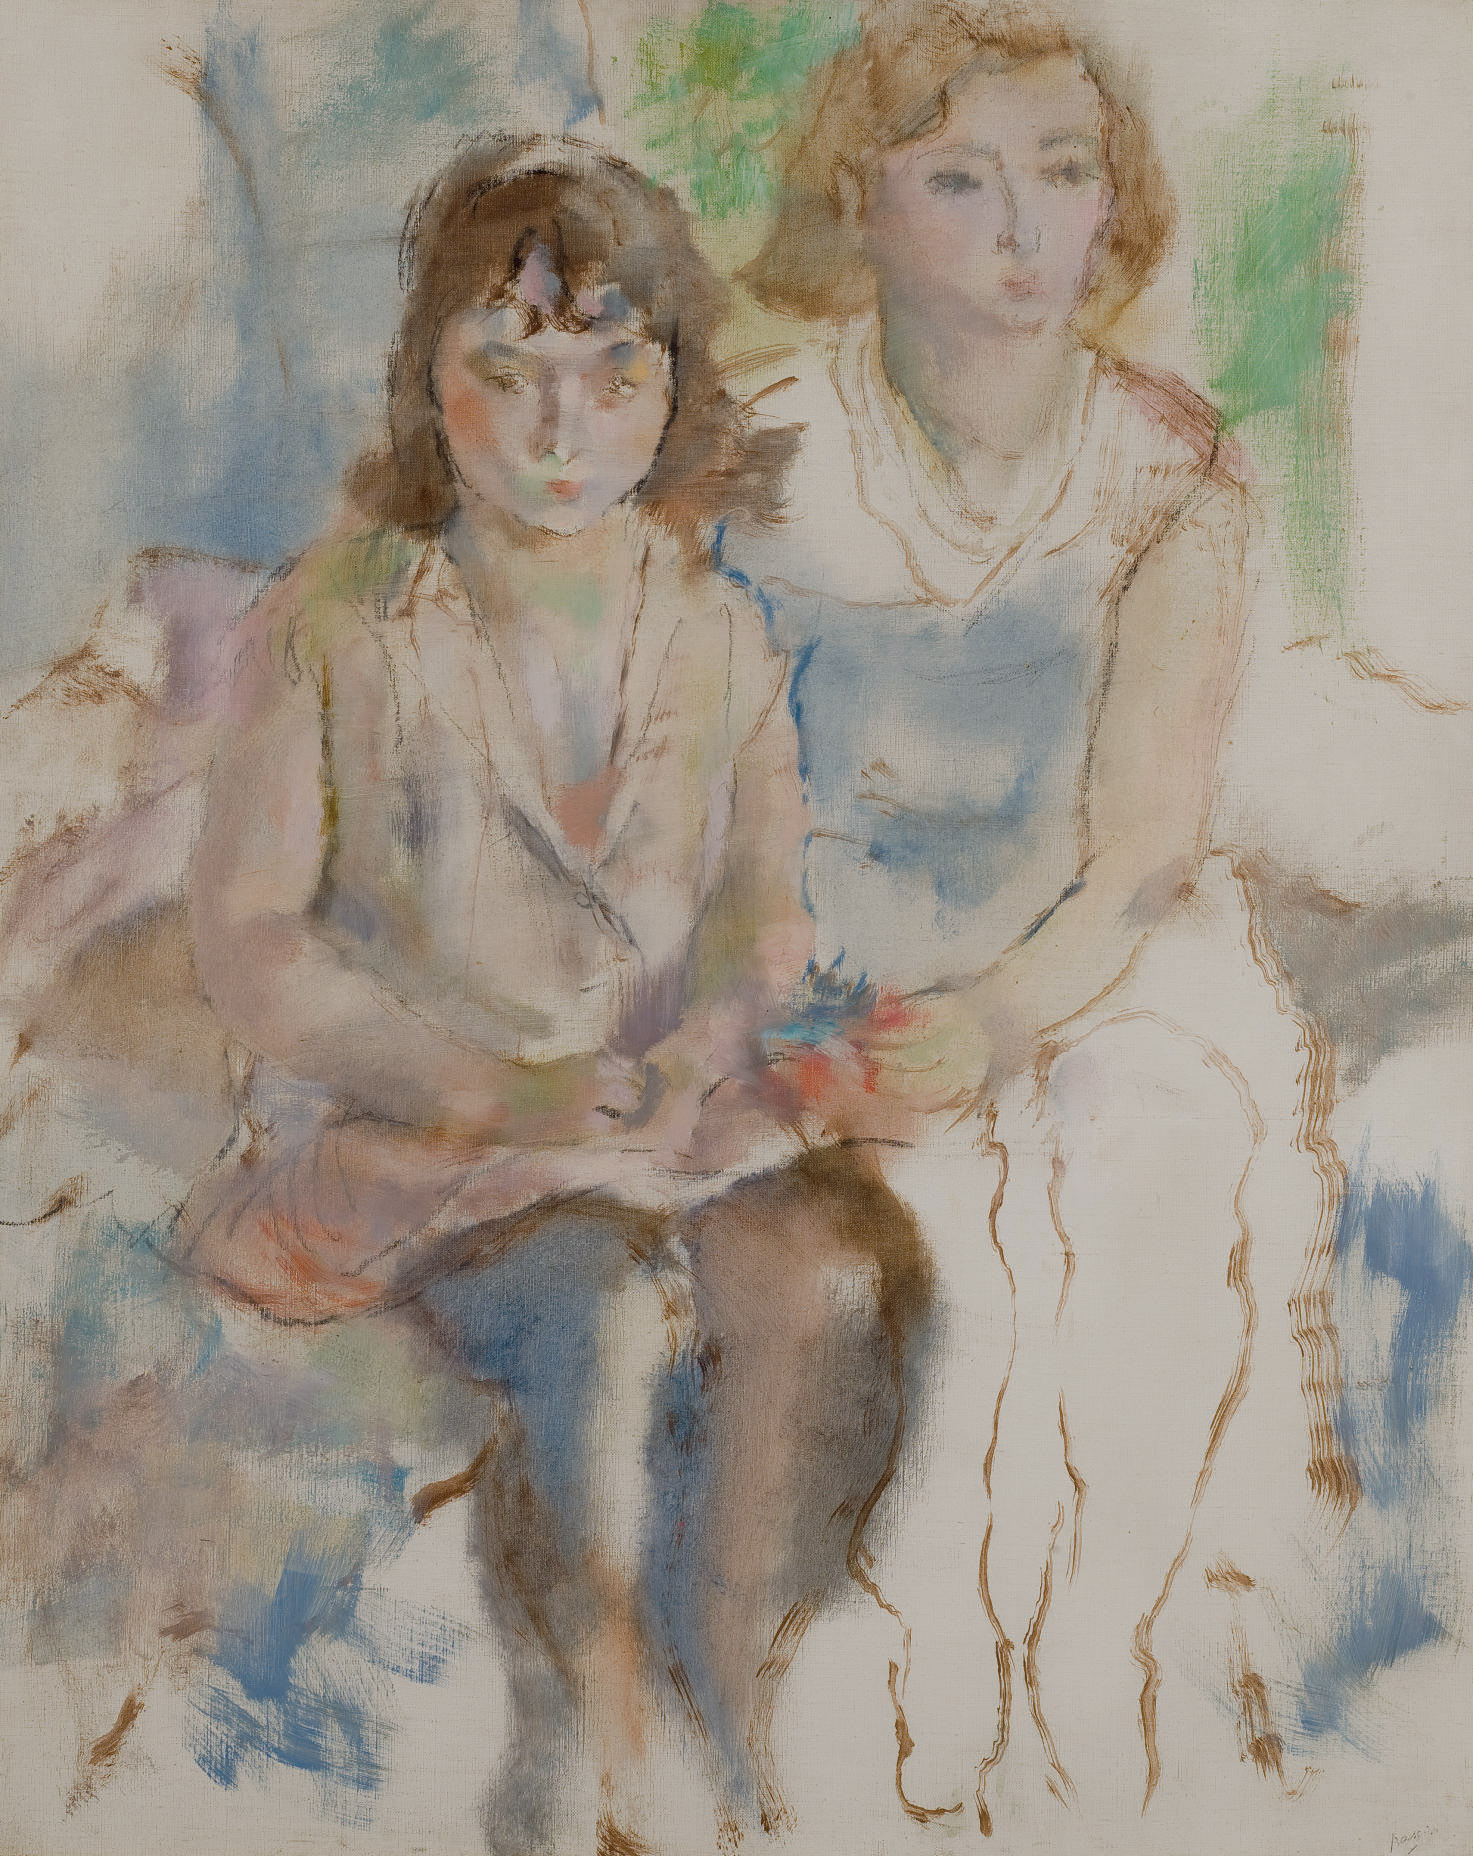 https://www.christies.com/img/LotImages/2010/PAR/2010_PAR_05625_0104_000(jules_pascin_claudia_et_zinah).jpg